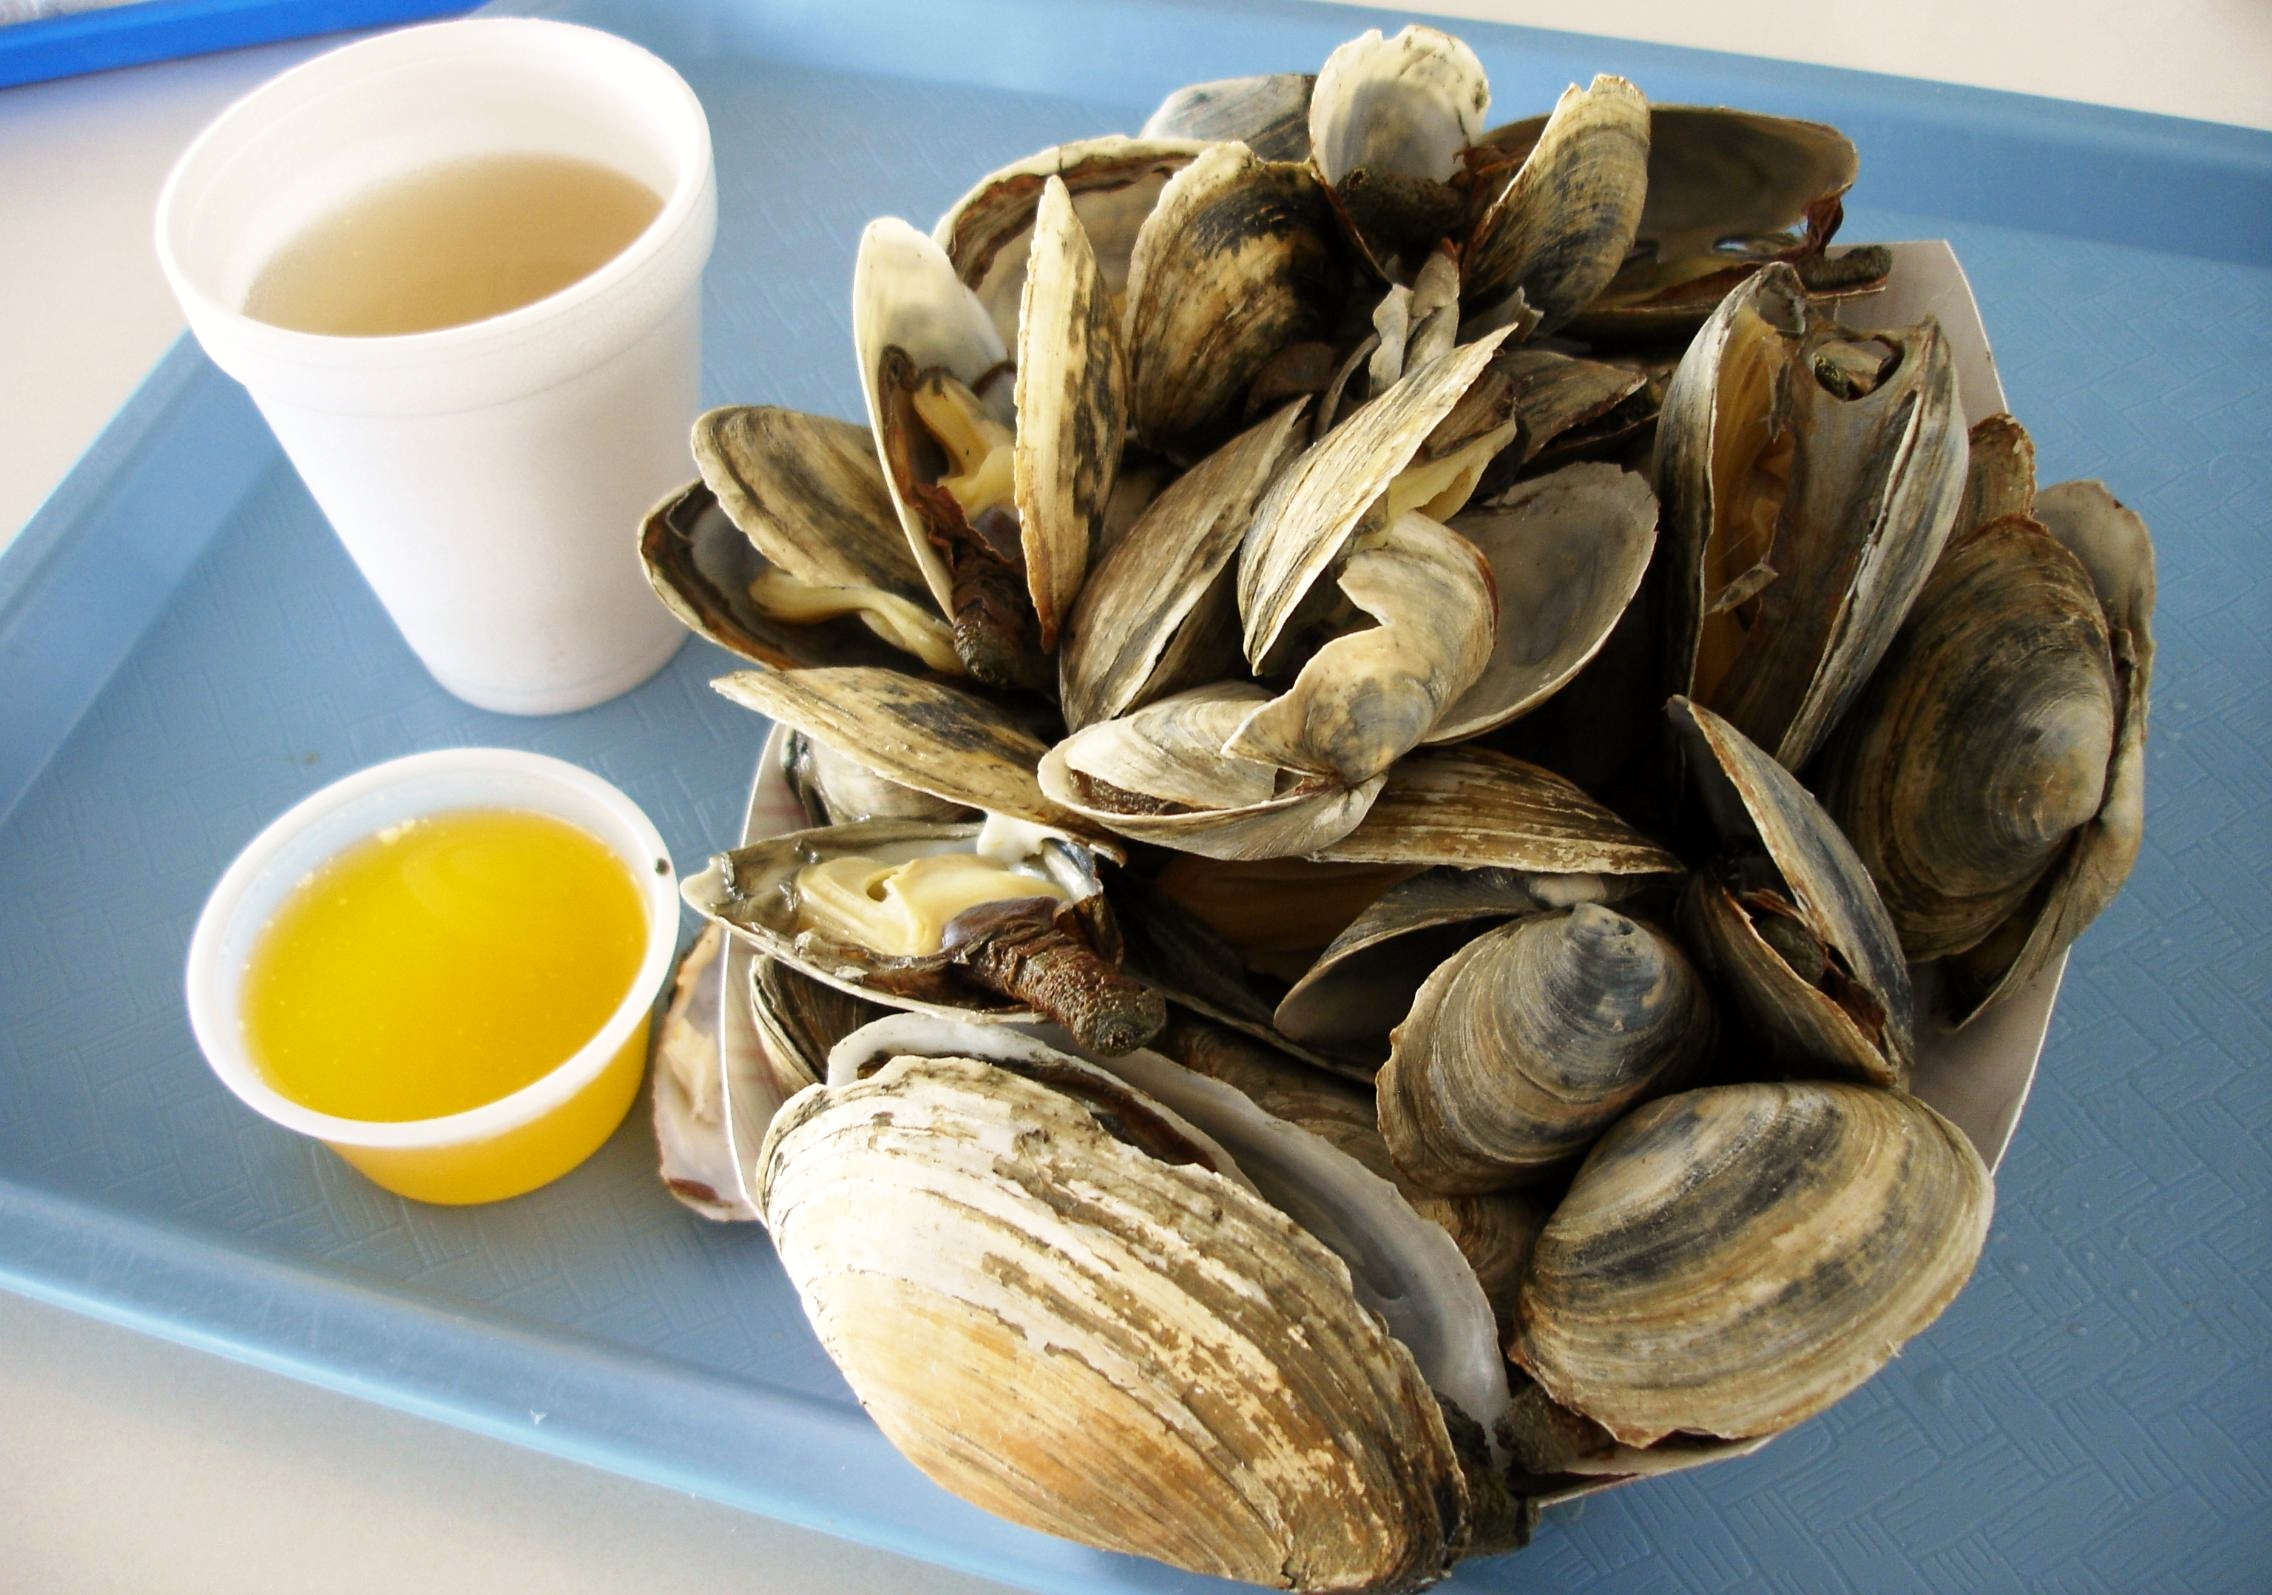 Steamers are local, not farmed. You can tell by the chipped edges and varying sizes. They also need a more thorough rinsing in the broth than their farmed cousins. We only wish the butter was really butter (we don't know for certain that it isn't the real stuff but to our tongues there was no butter flavor whatsoever).